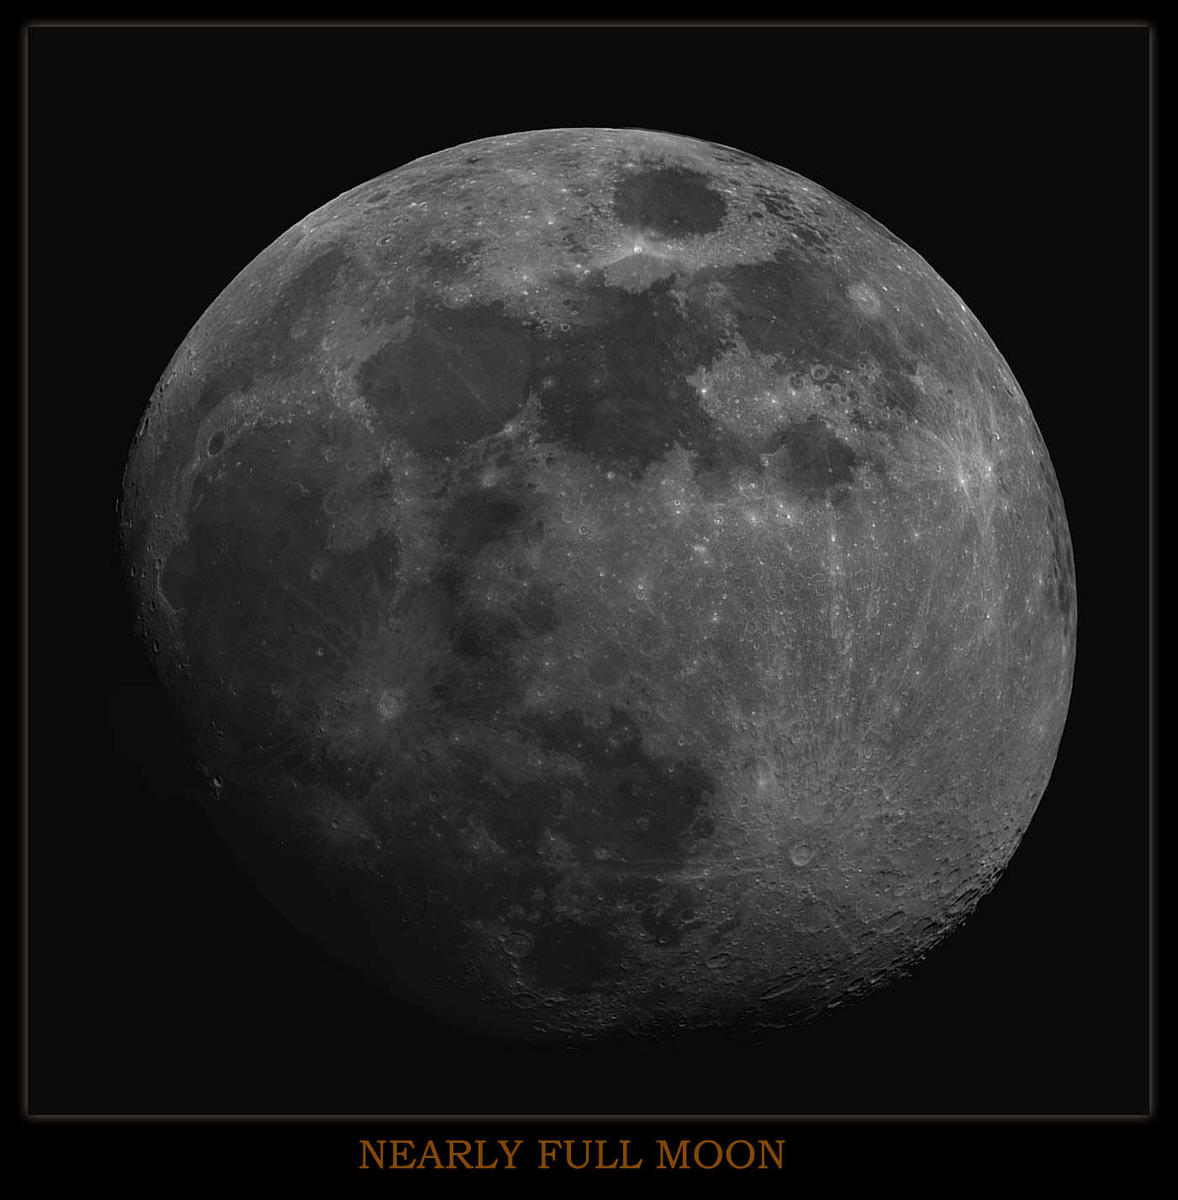 Nearly full Moon ,Taken with the Atik 2HS, 13 Pane Mosiac,processed in Photoshop